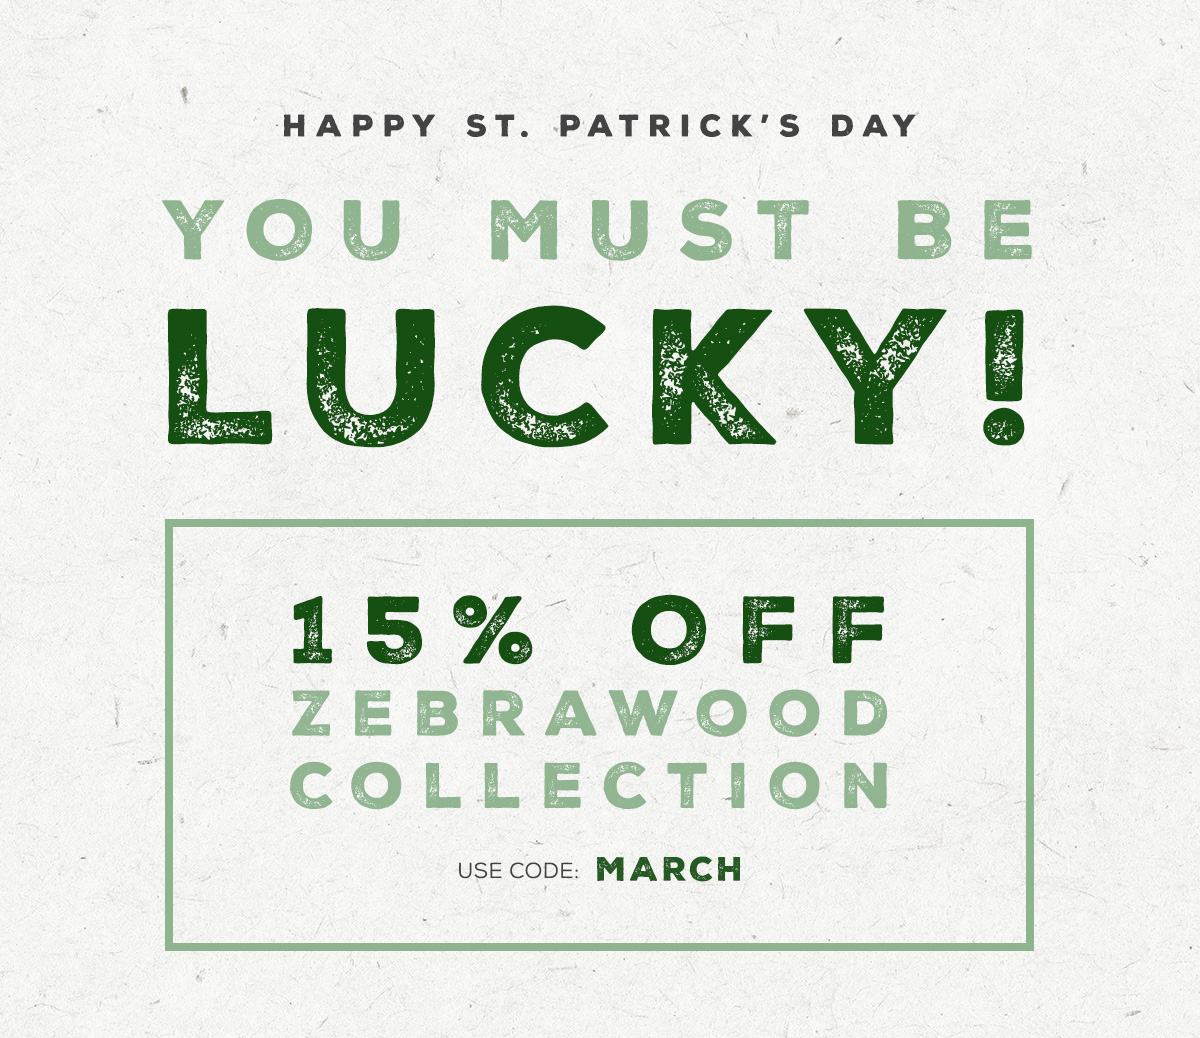 Happy St. Patrick's Day - You Must Be Lucky! - 15% Off Zebrawood